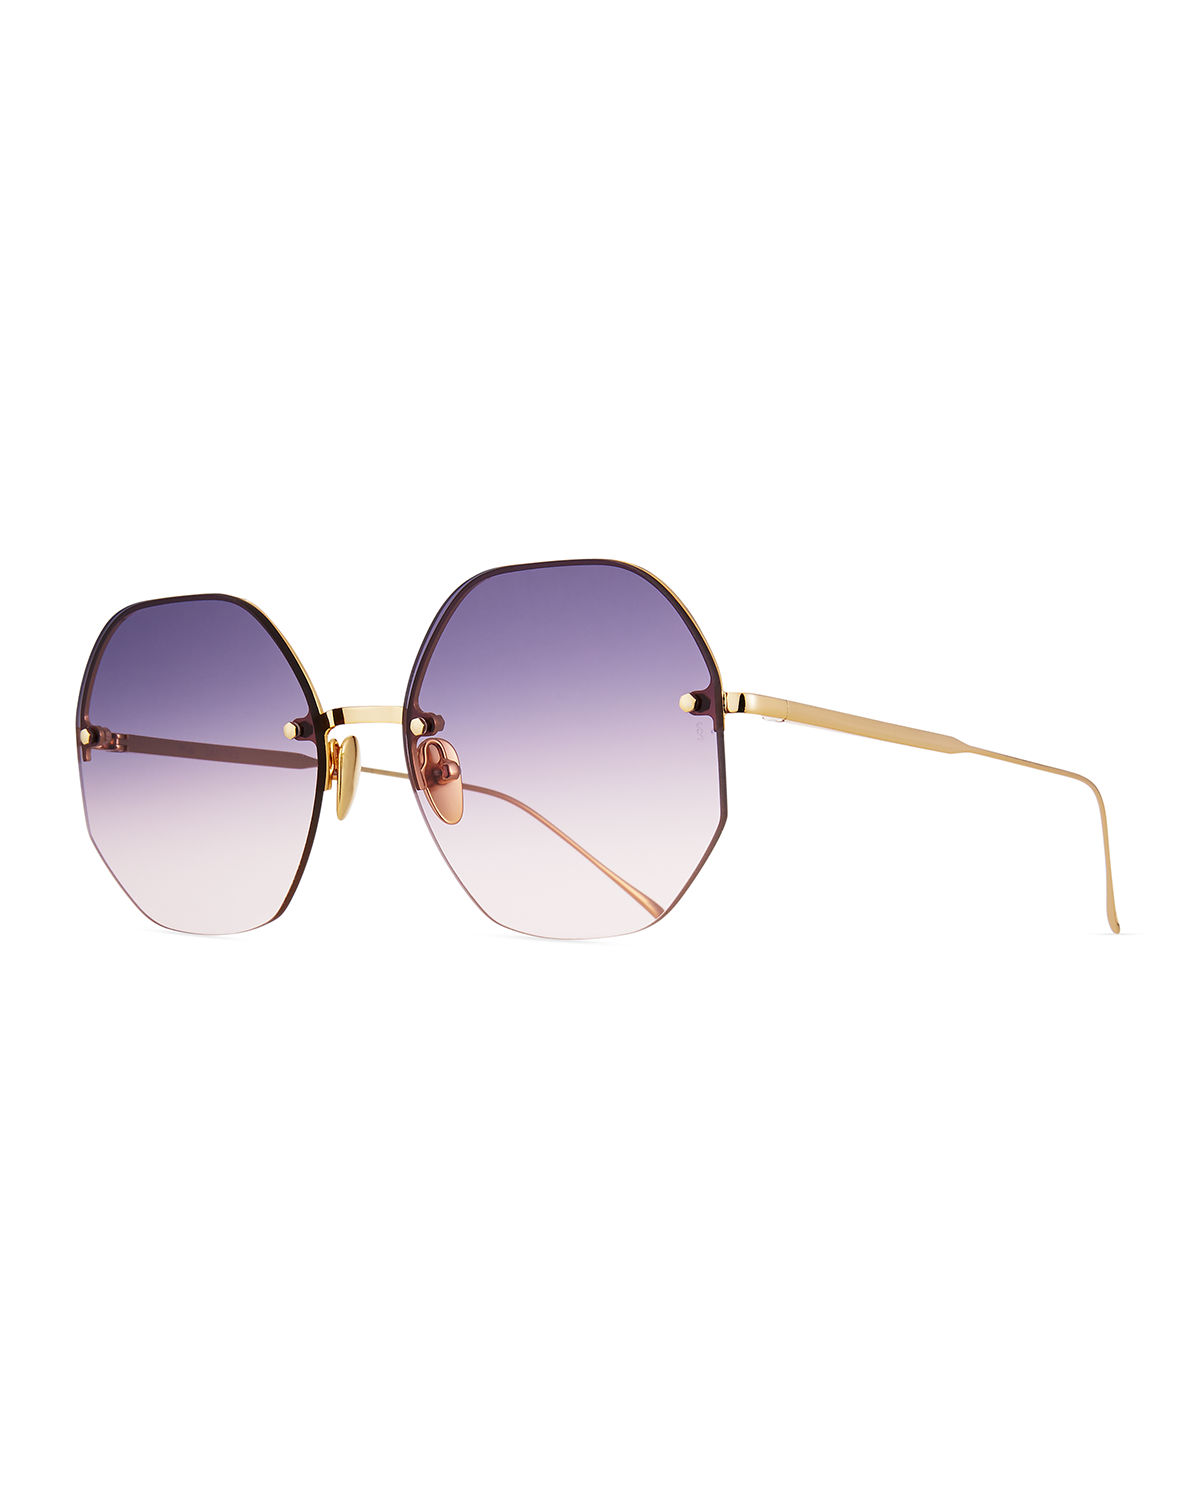 Sunday Somewhere Sunglasses MIA RIMLESS OCTAGONAL SUNGLASSES